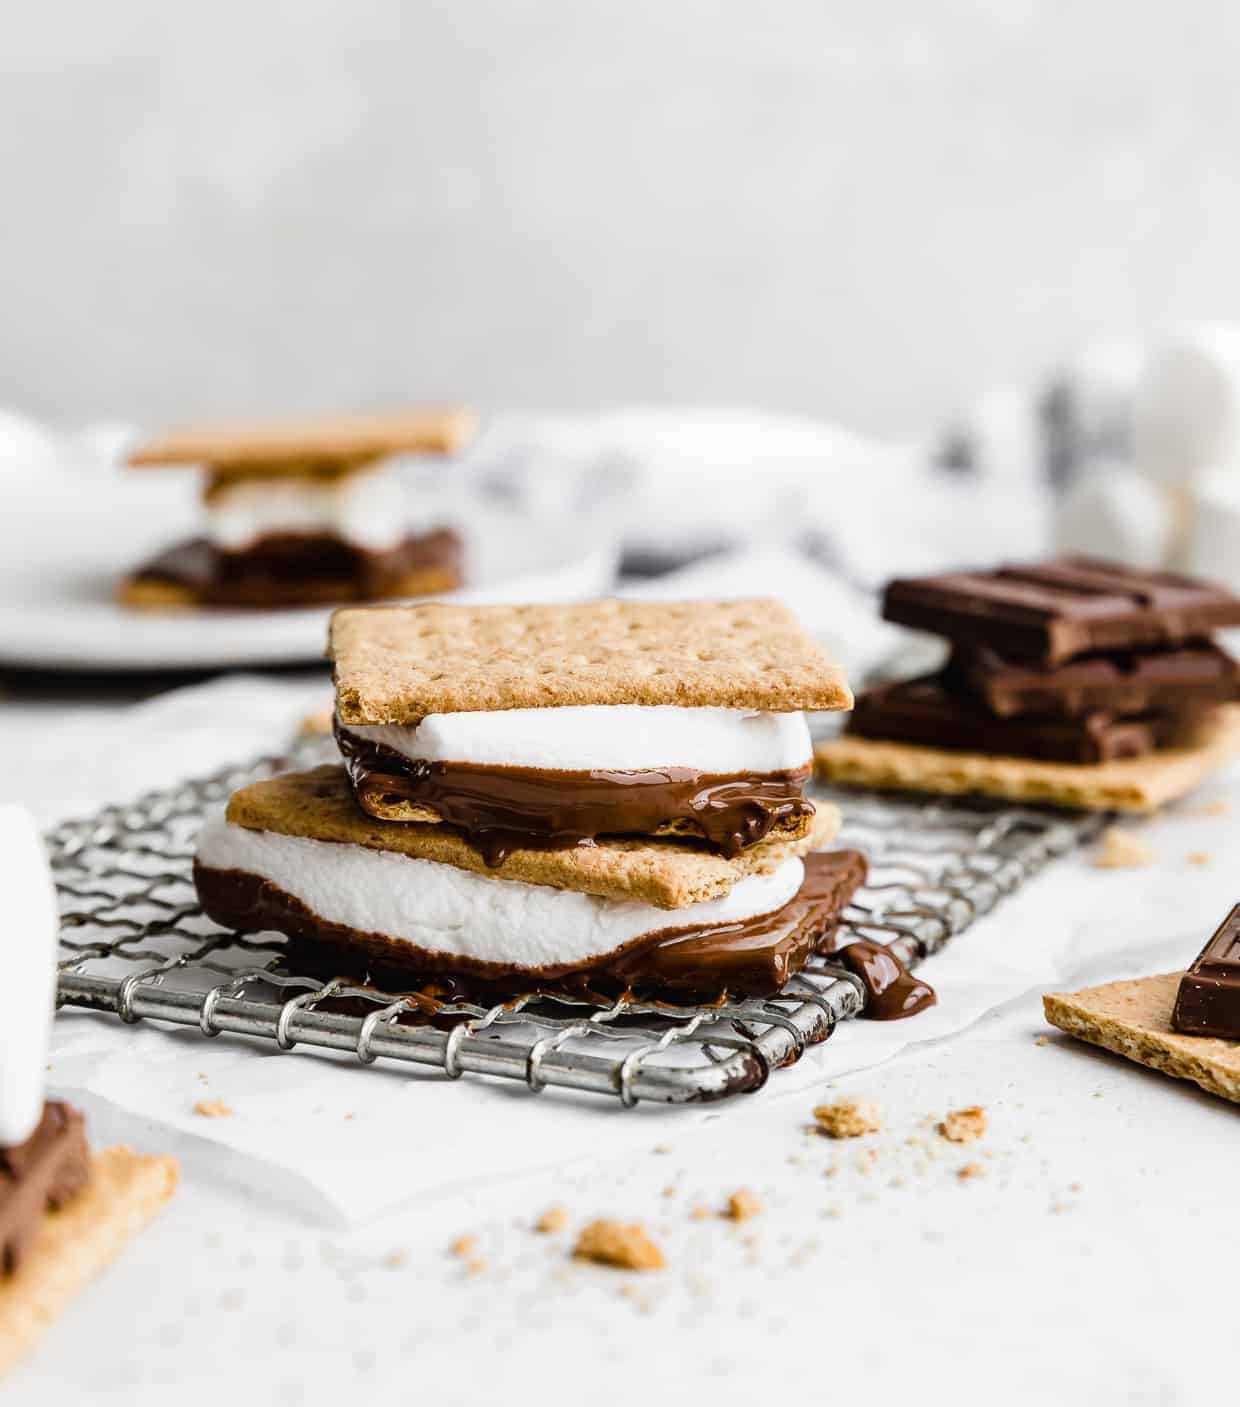 Oven s'mores on a wire cooling rack against a white background.